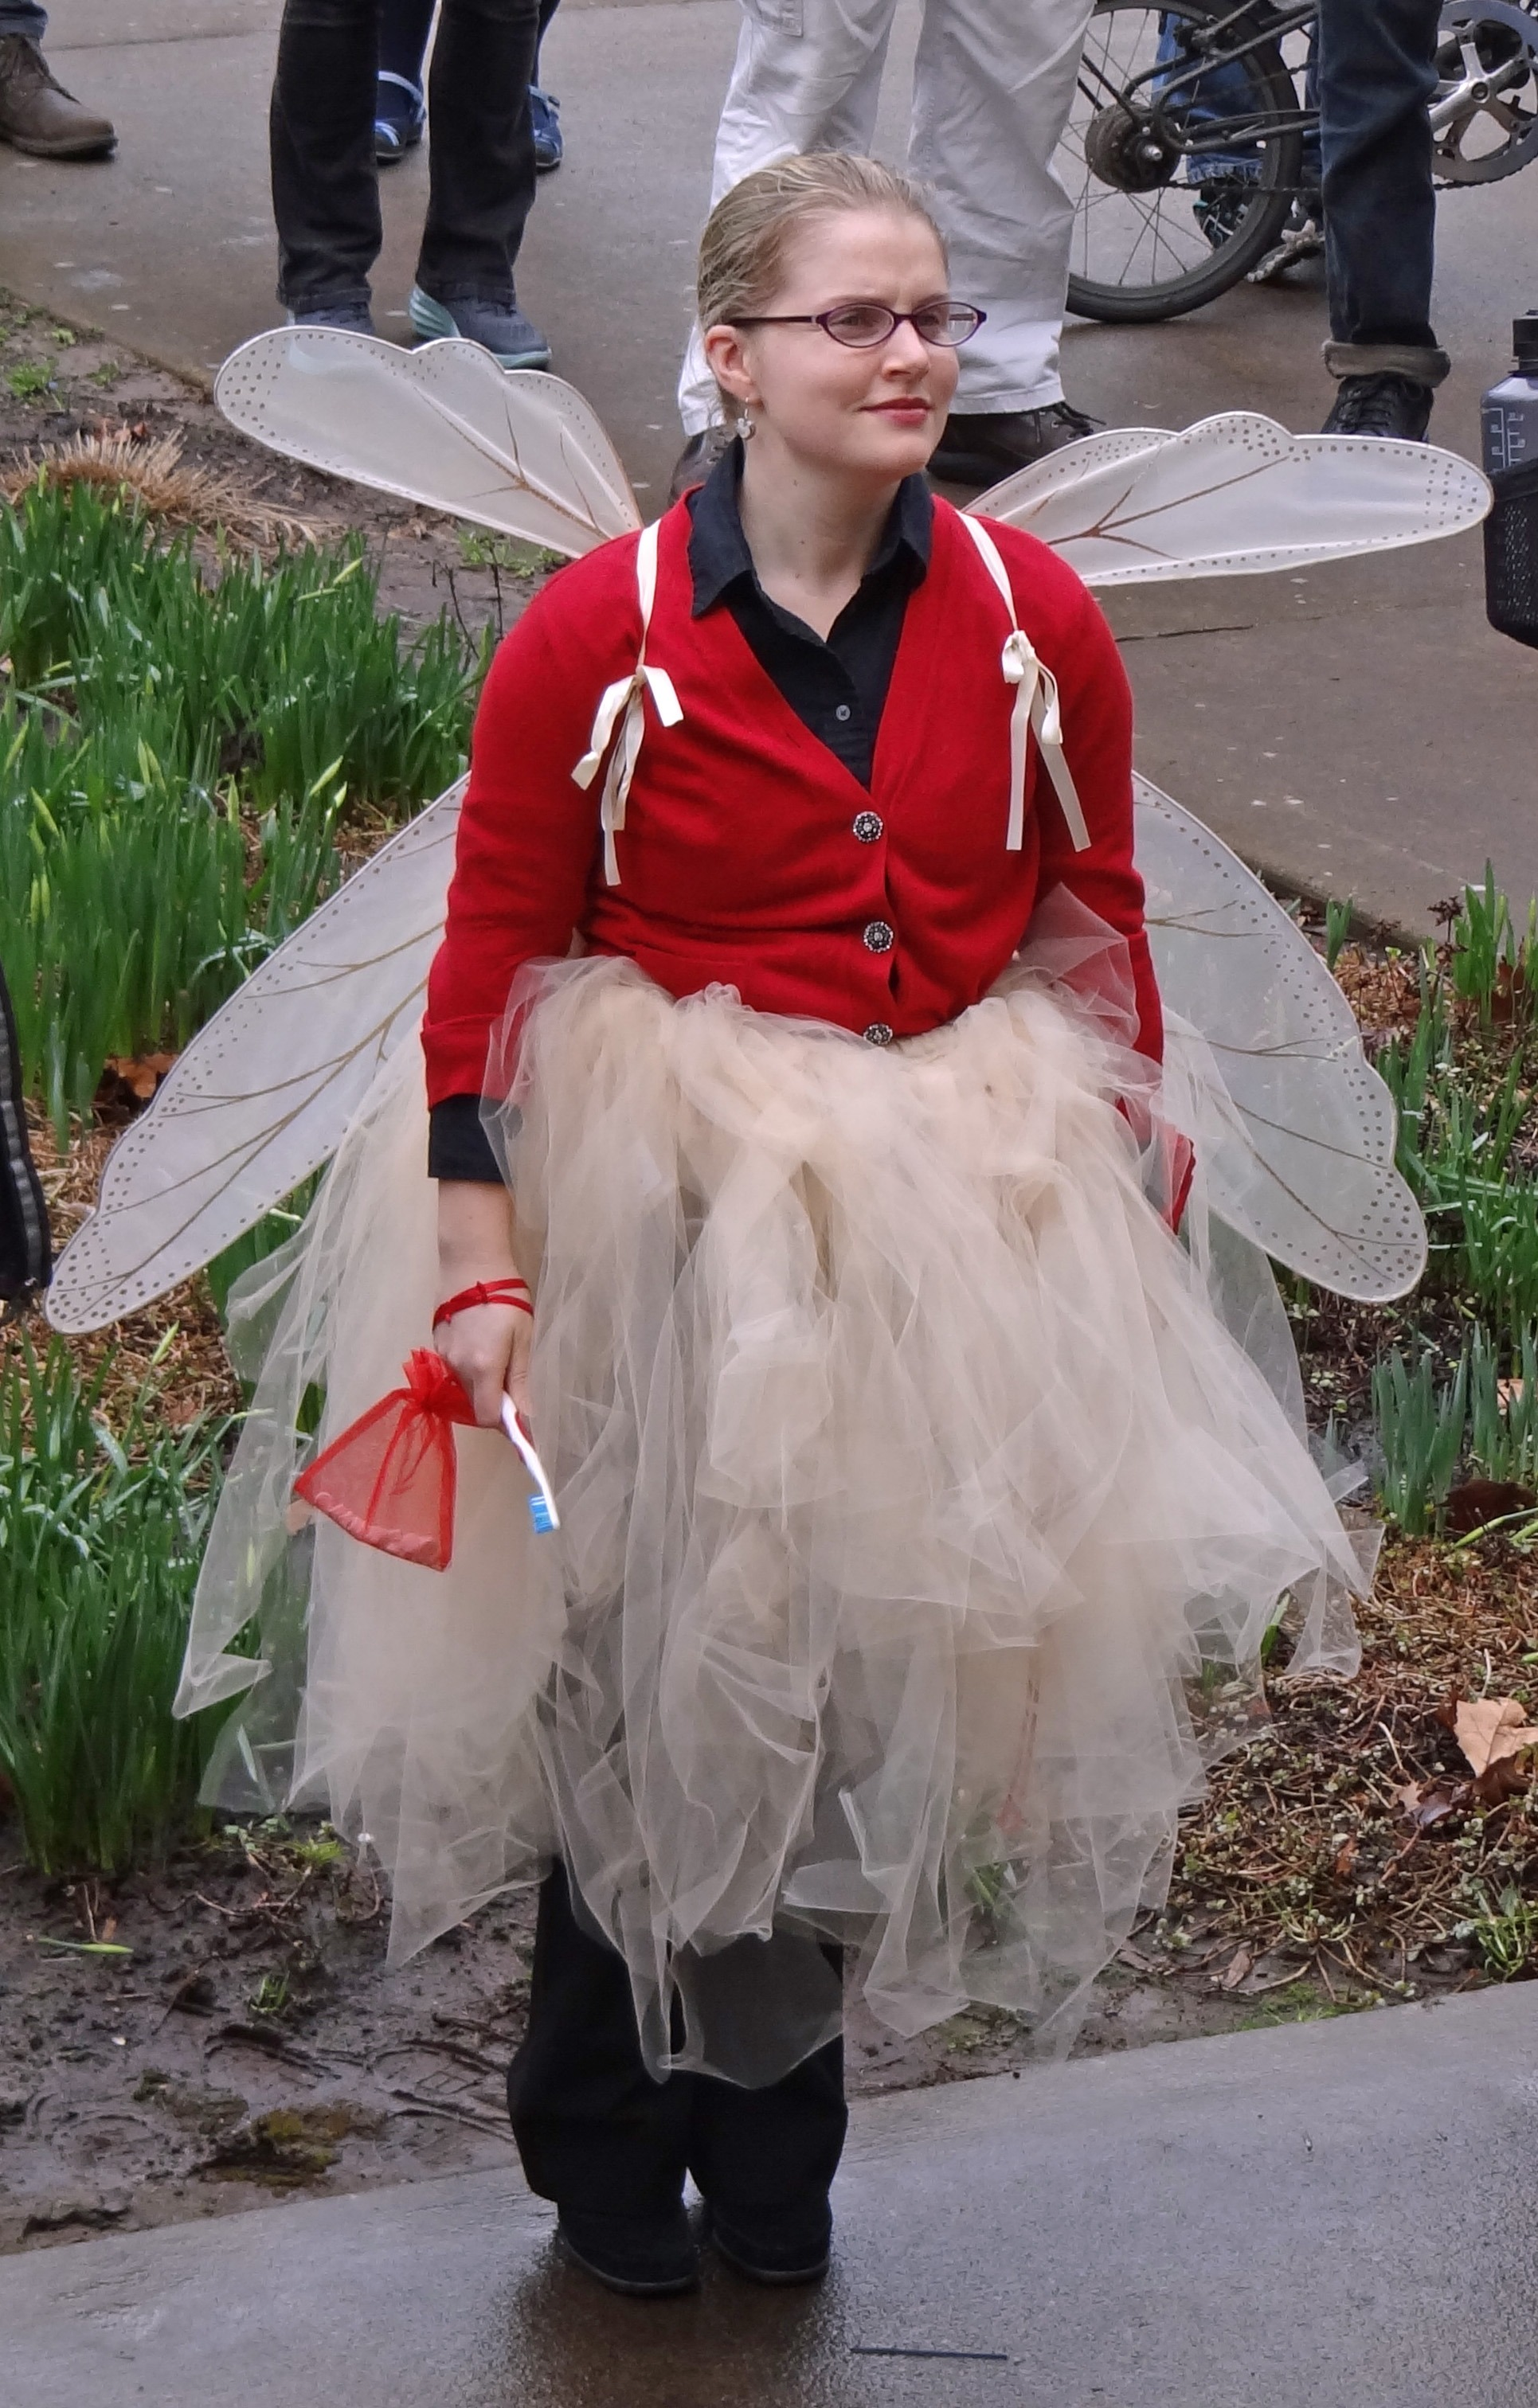 Tooth Fairy supporting major dental coverage for GTFs